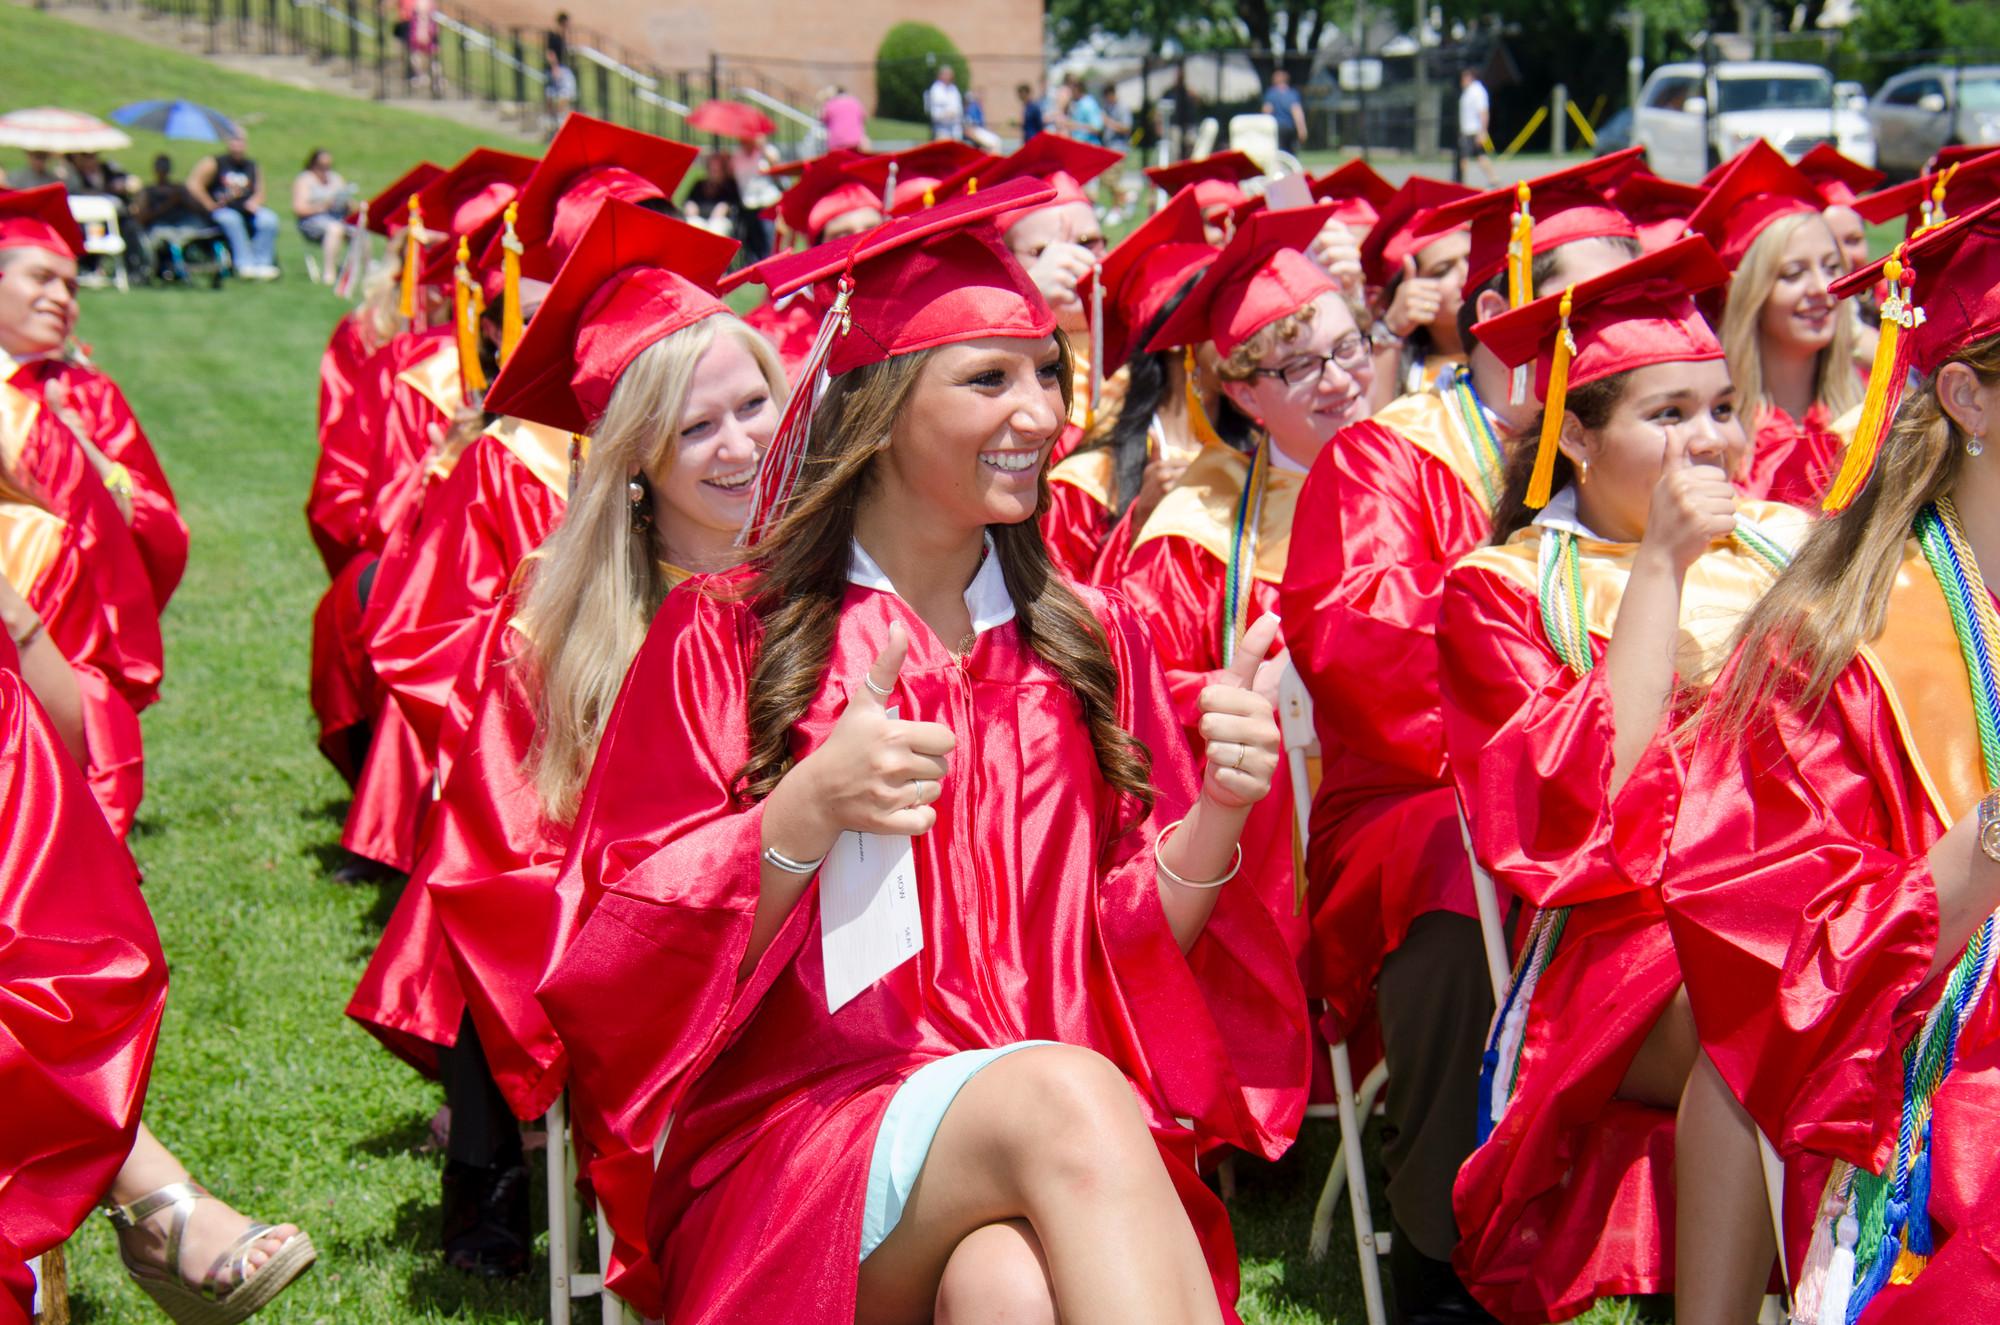 The graduating class gave a cheerful thumbs up at the request of class president Jason Dunleavy.